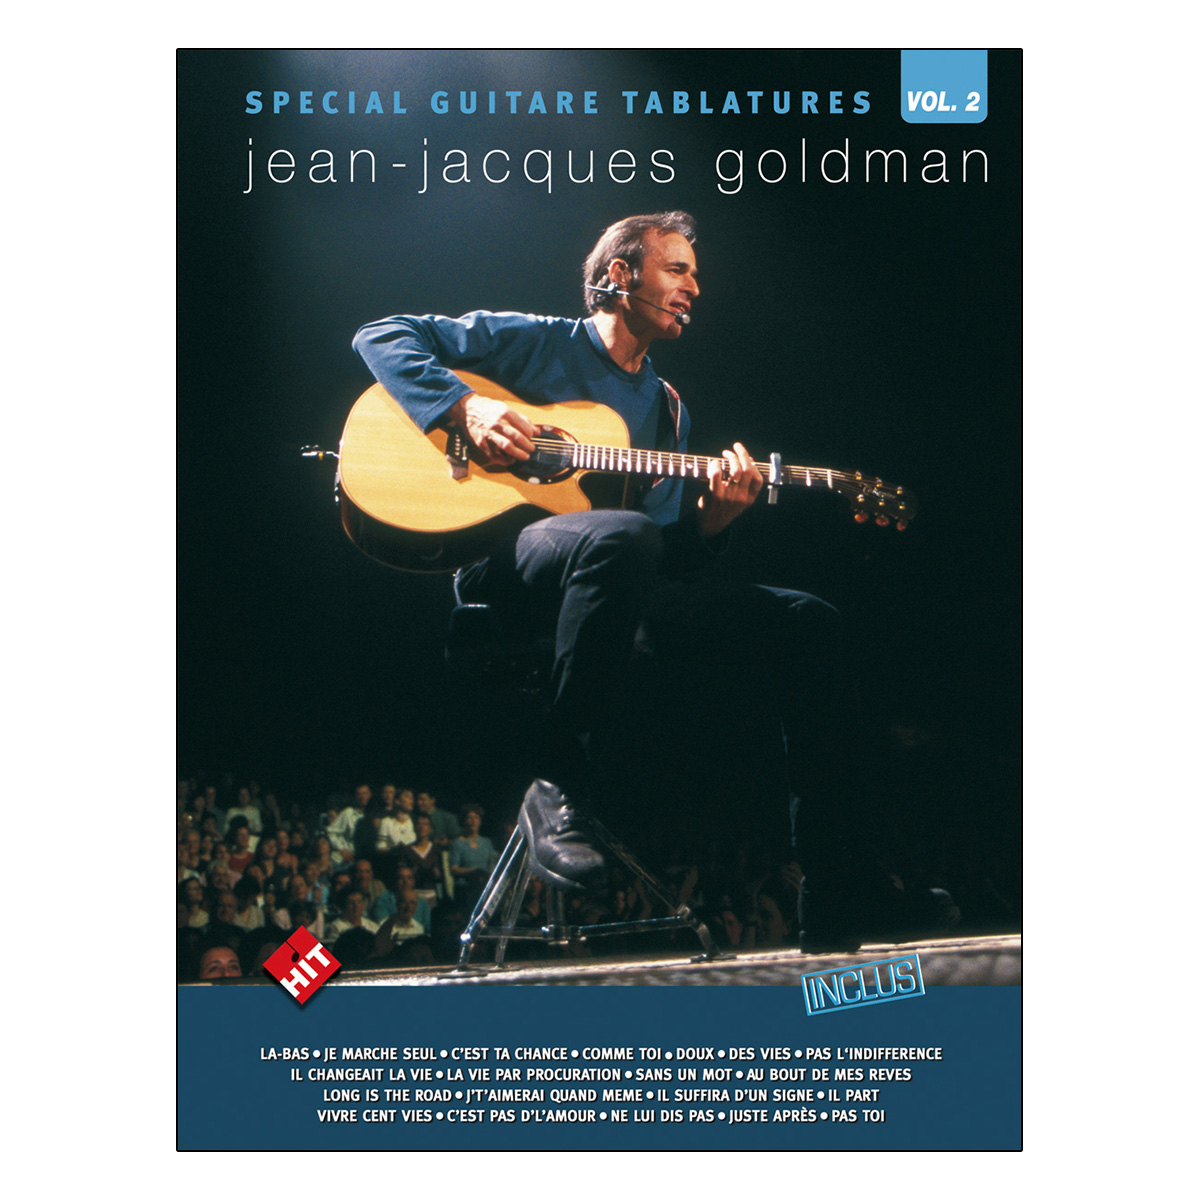 Spécial guitare tablatures vol.2 Jean-Jacques Goldman